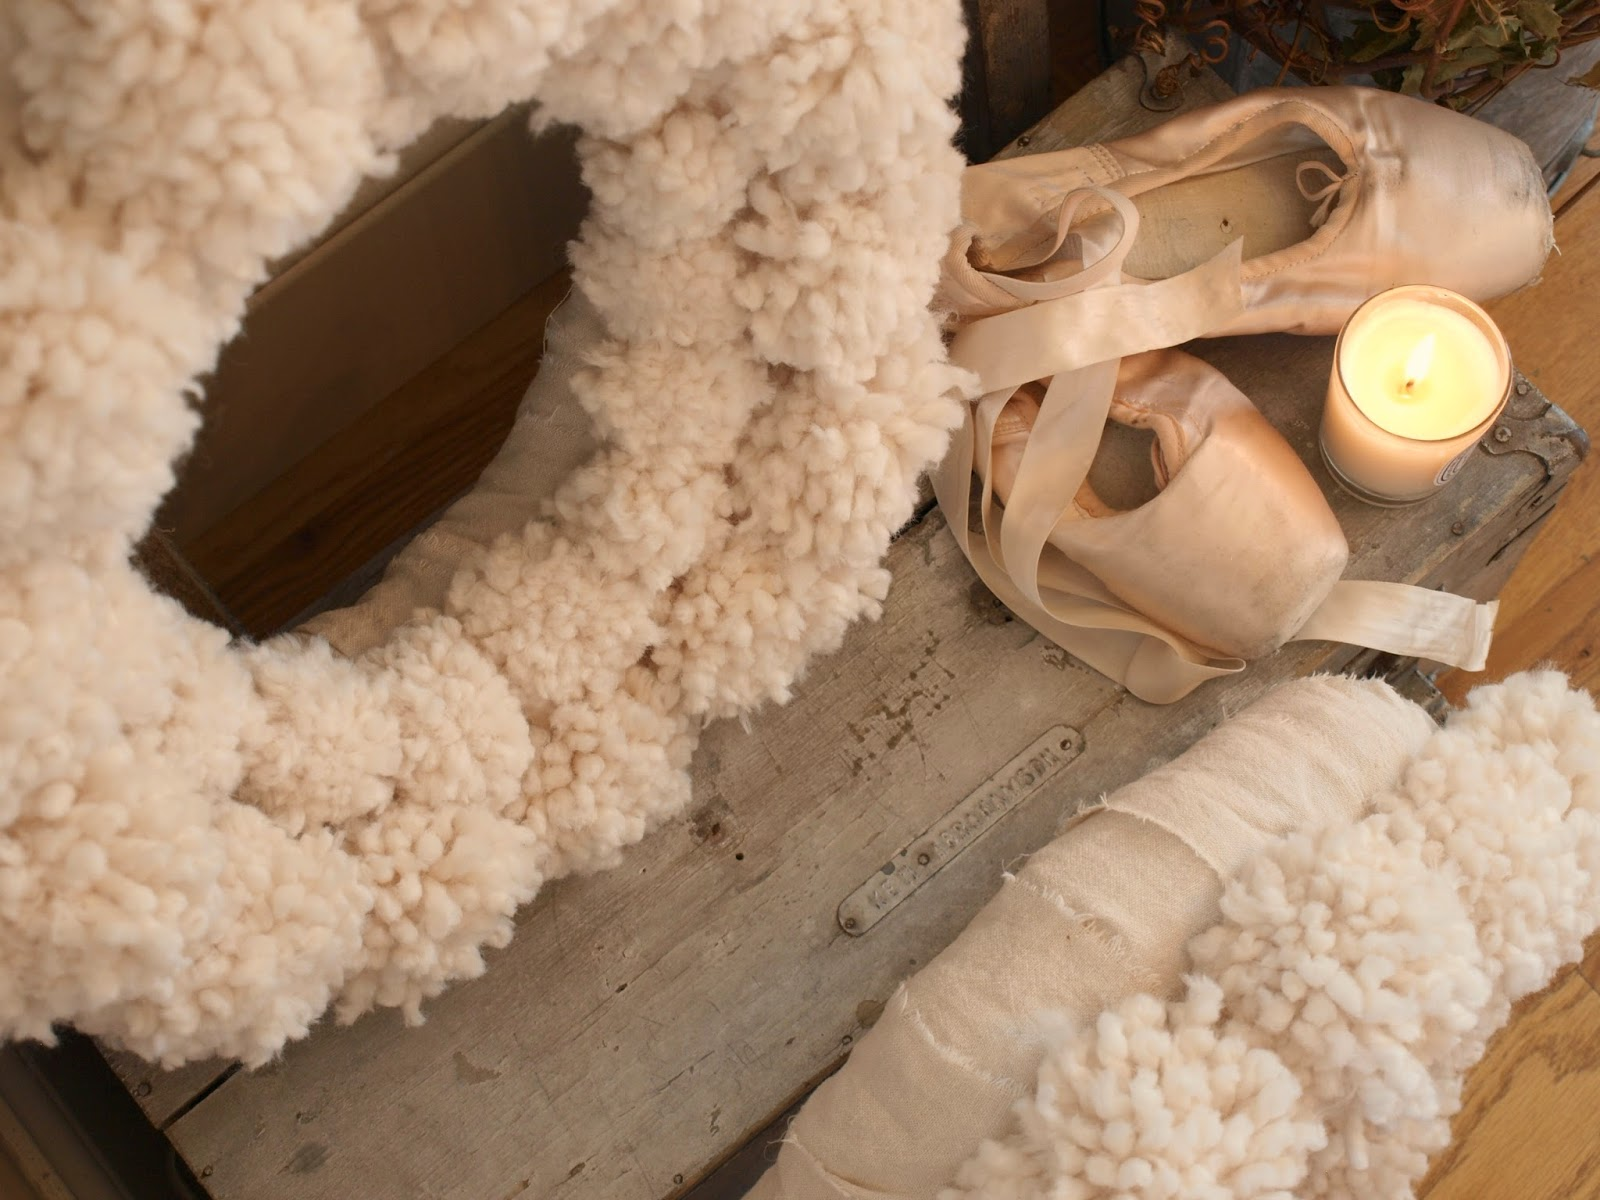 Cozy woolly white pom pom wreaths, pink pointe shoes, and vintage box